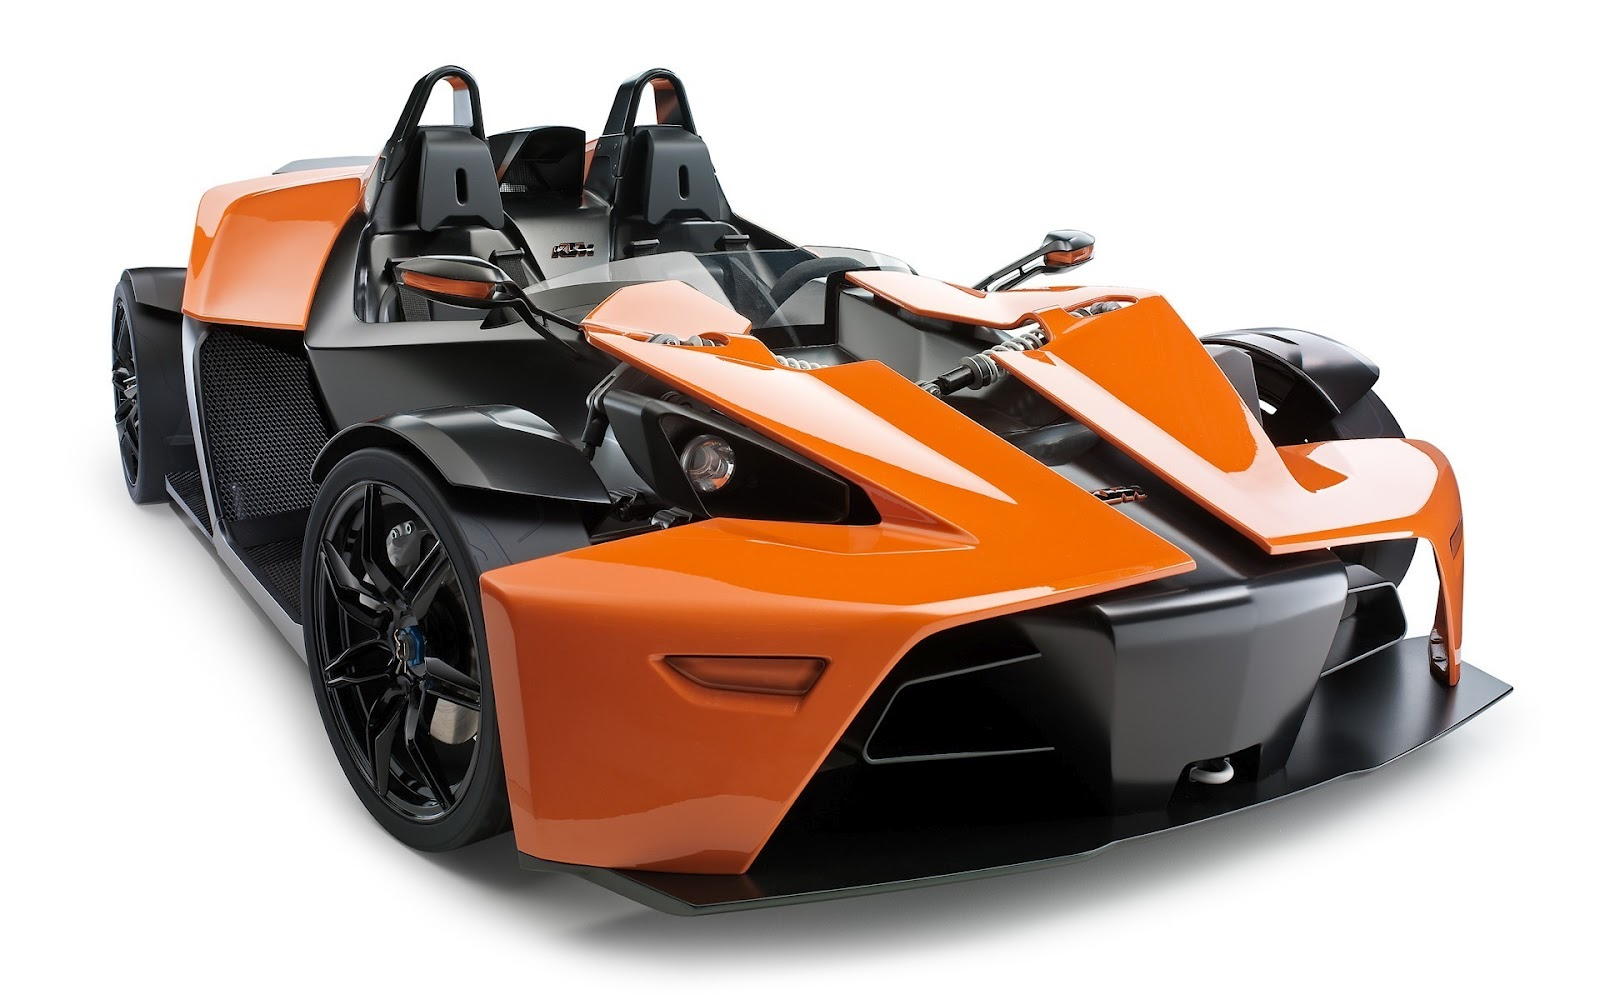 Fastest Car in The World Wallpaper 2014 Fastest Car in The World